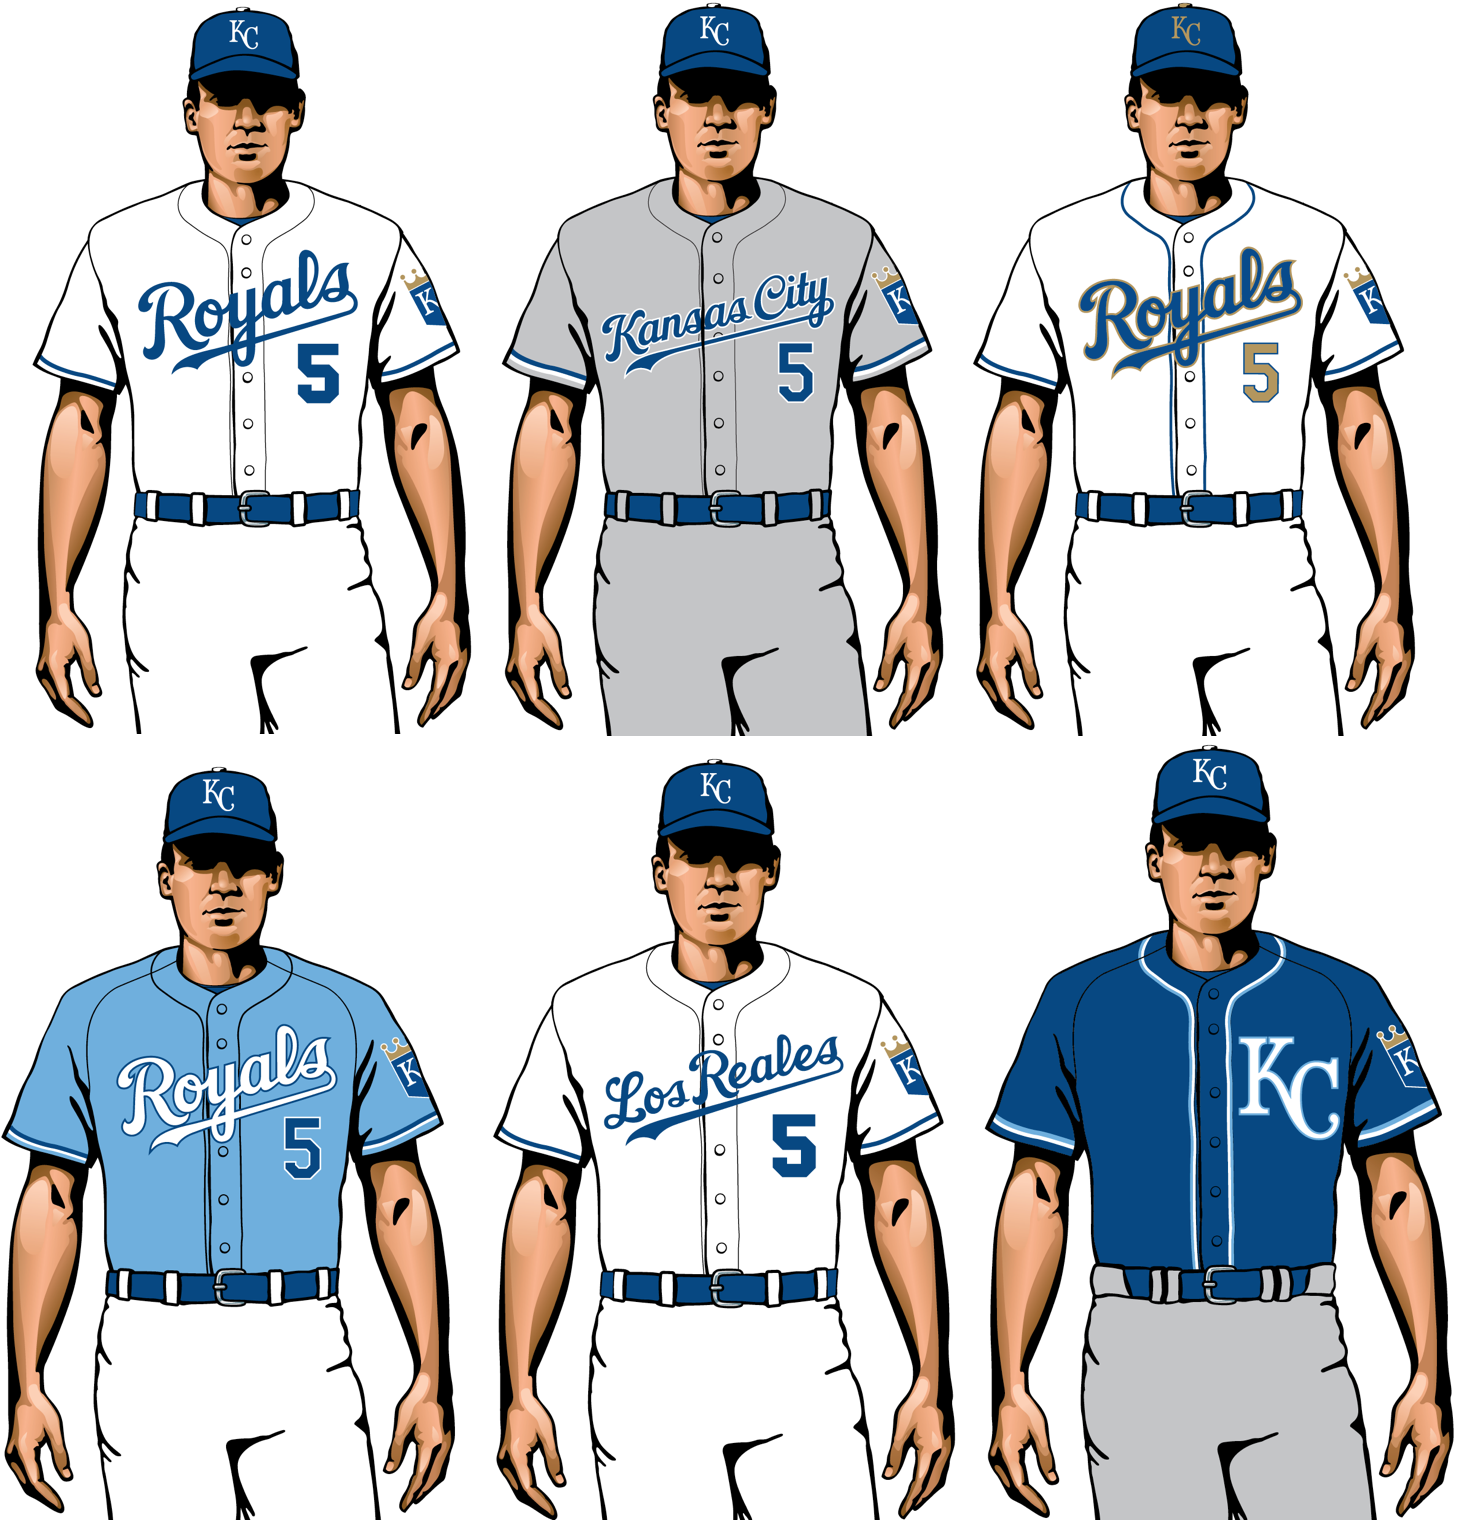 kansas city royals 2020 uniforms